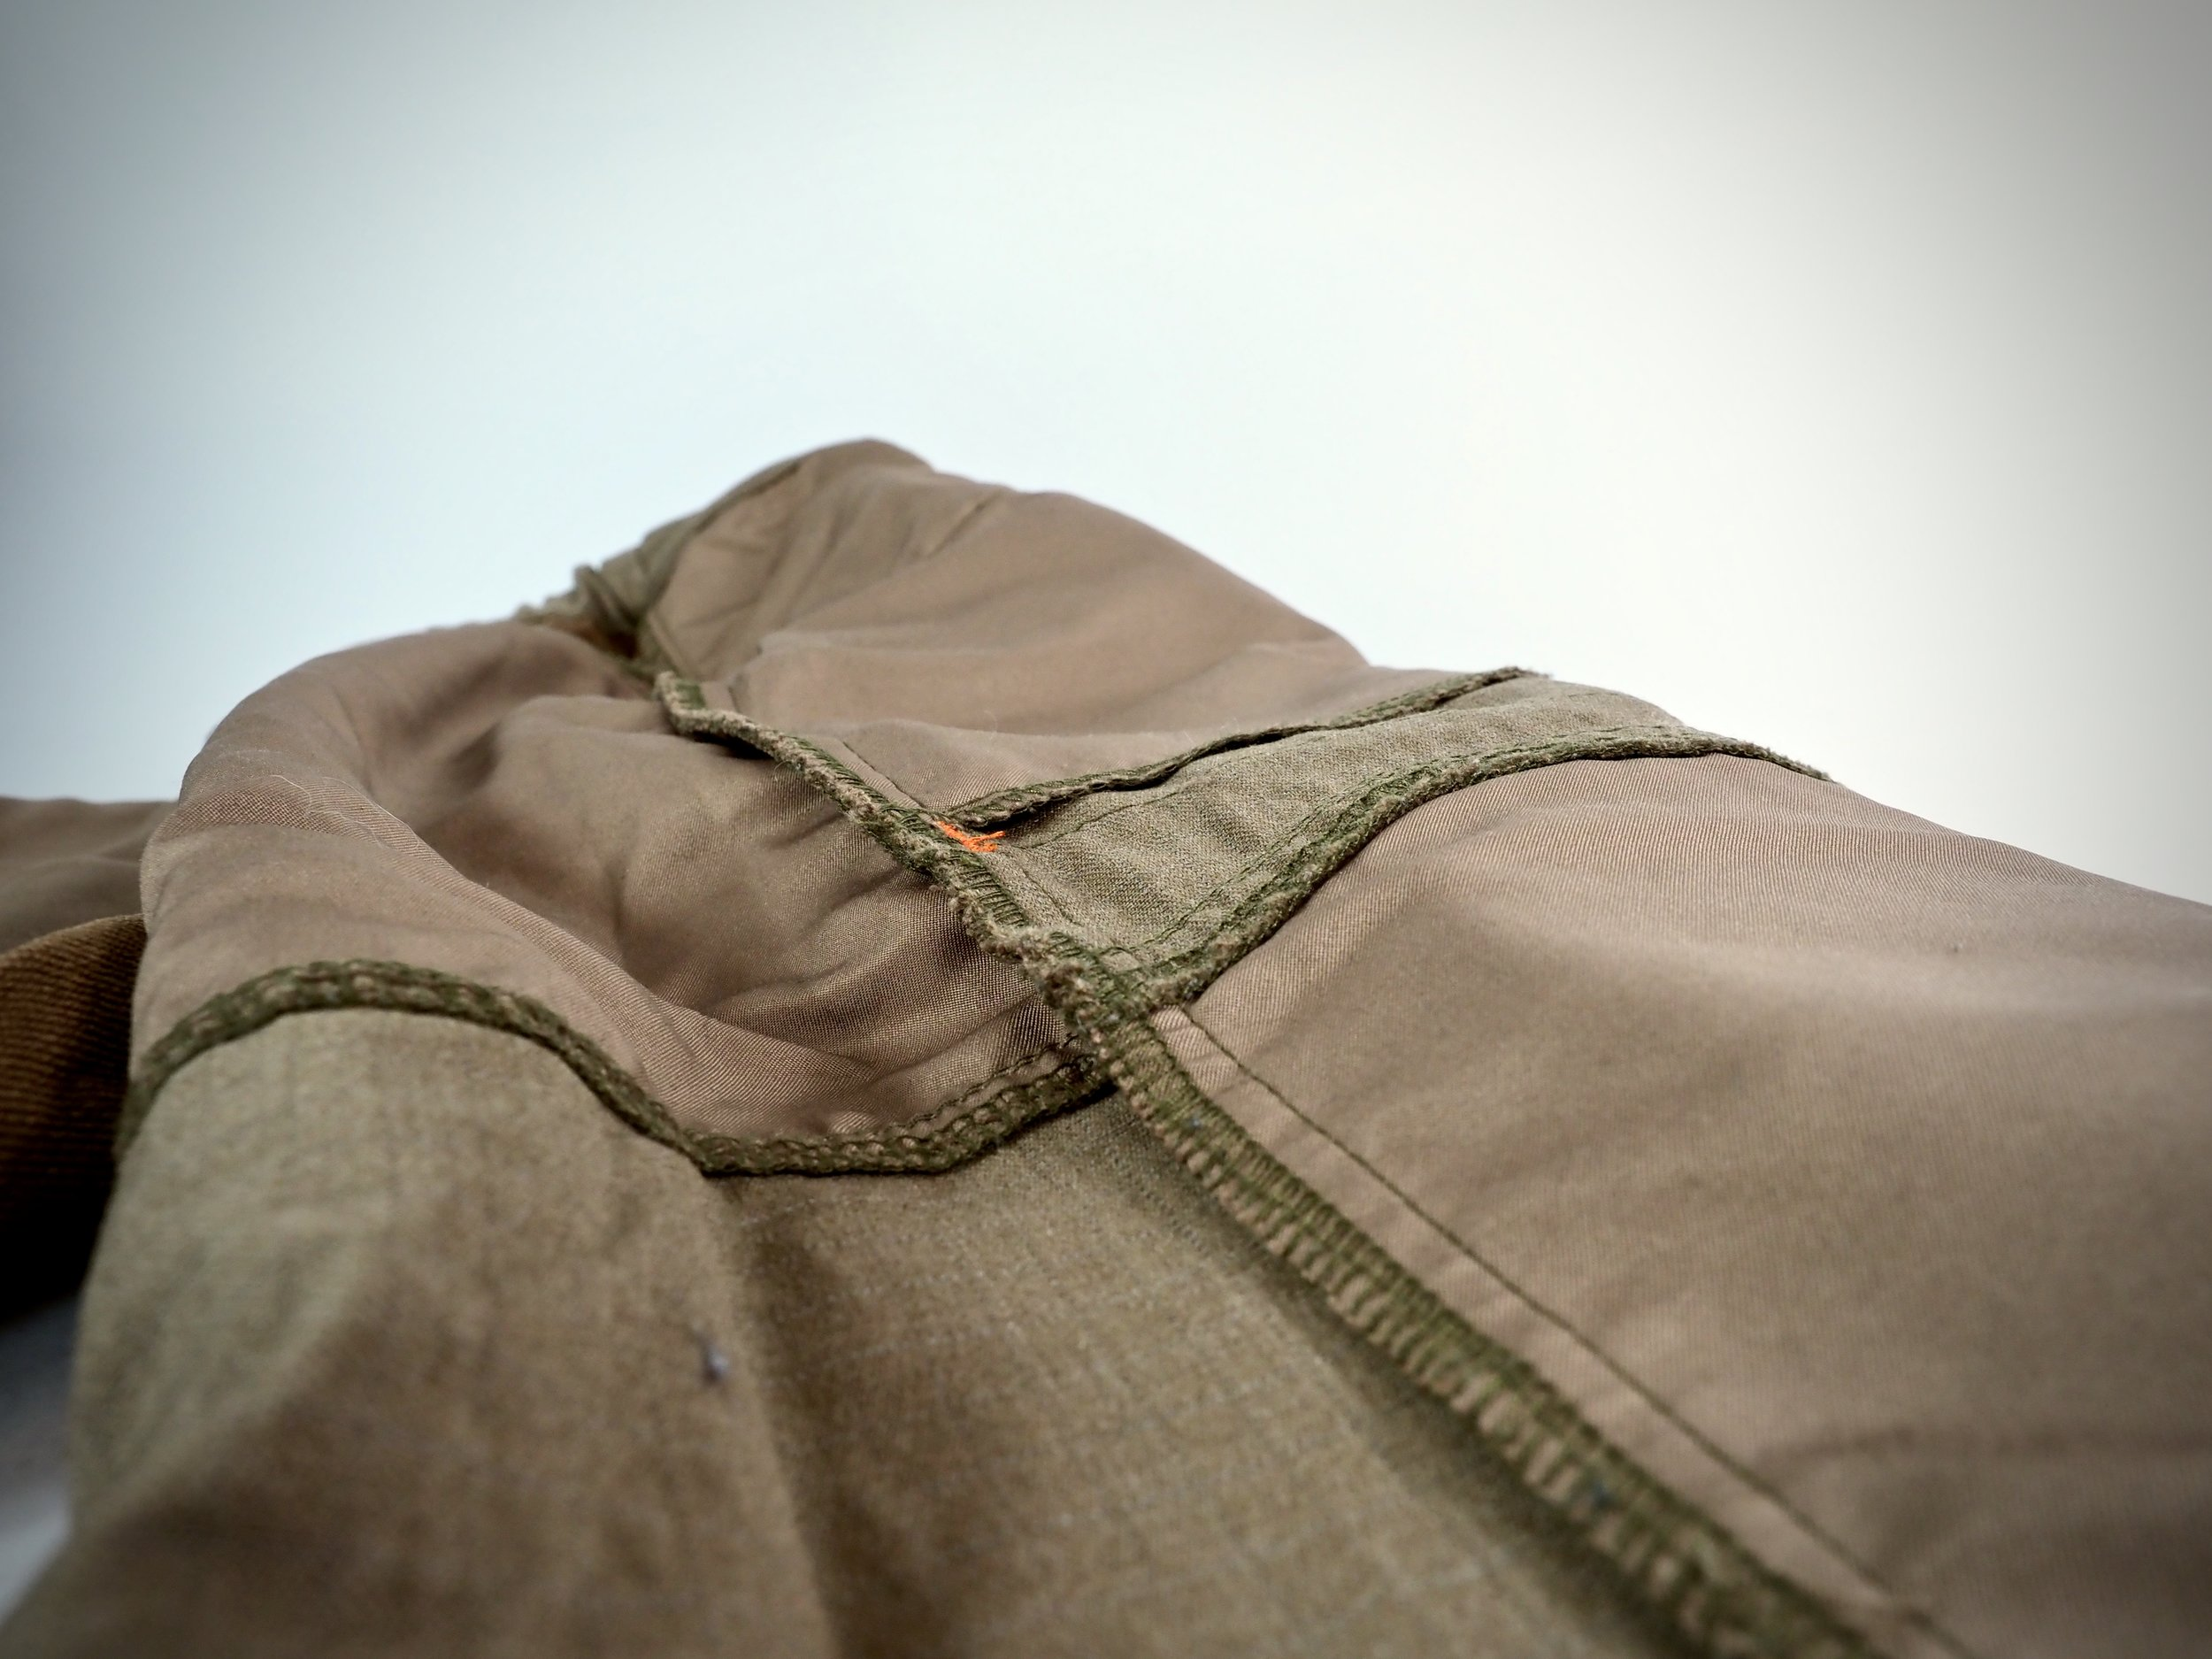 The stitching of the long vertical seam along the outside of the leg.